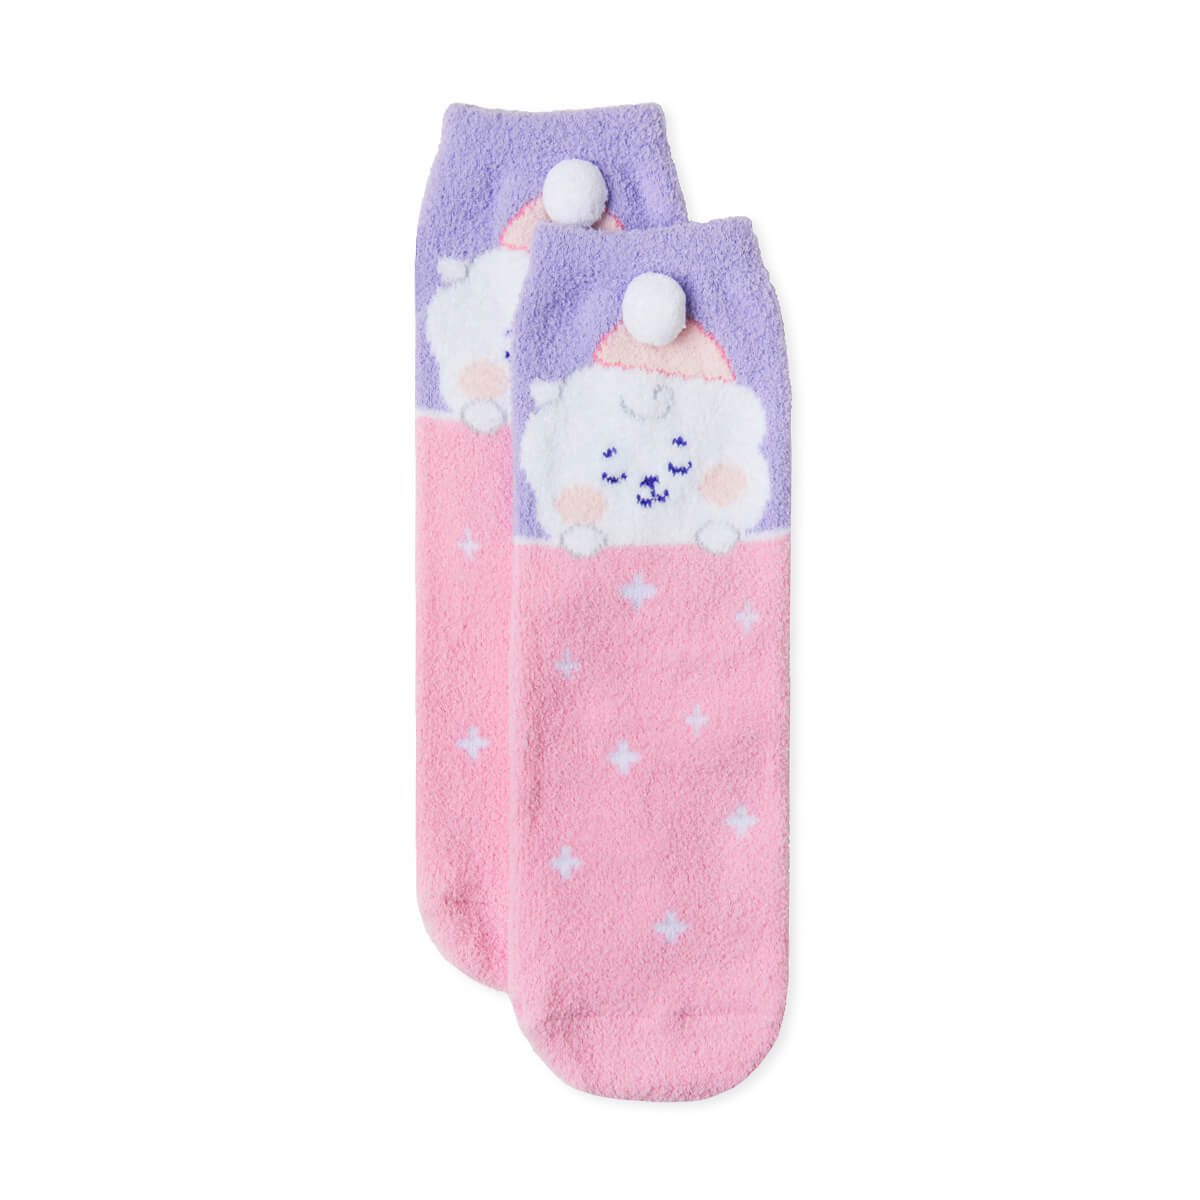 BT21 RJ Dream of Baby Fuzzy Sleep Socks